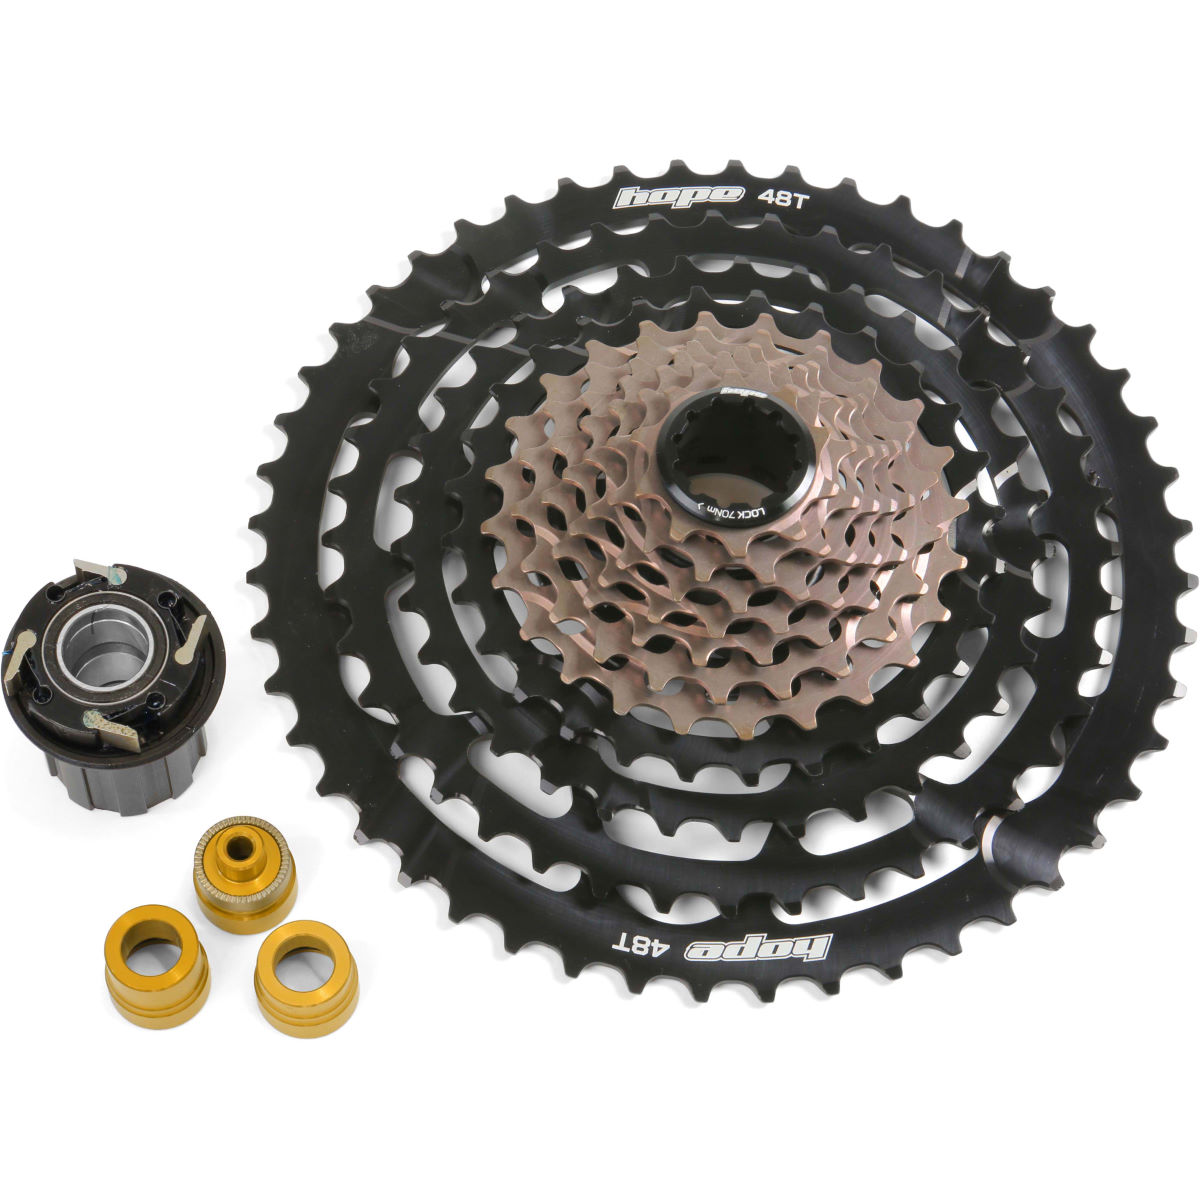 Hope 11 Speed Cassette With Pro 4 Freehub - 10-48t 11 Speed Black